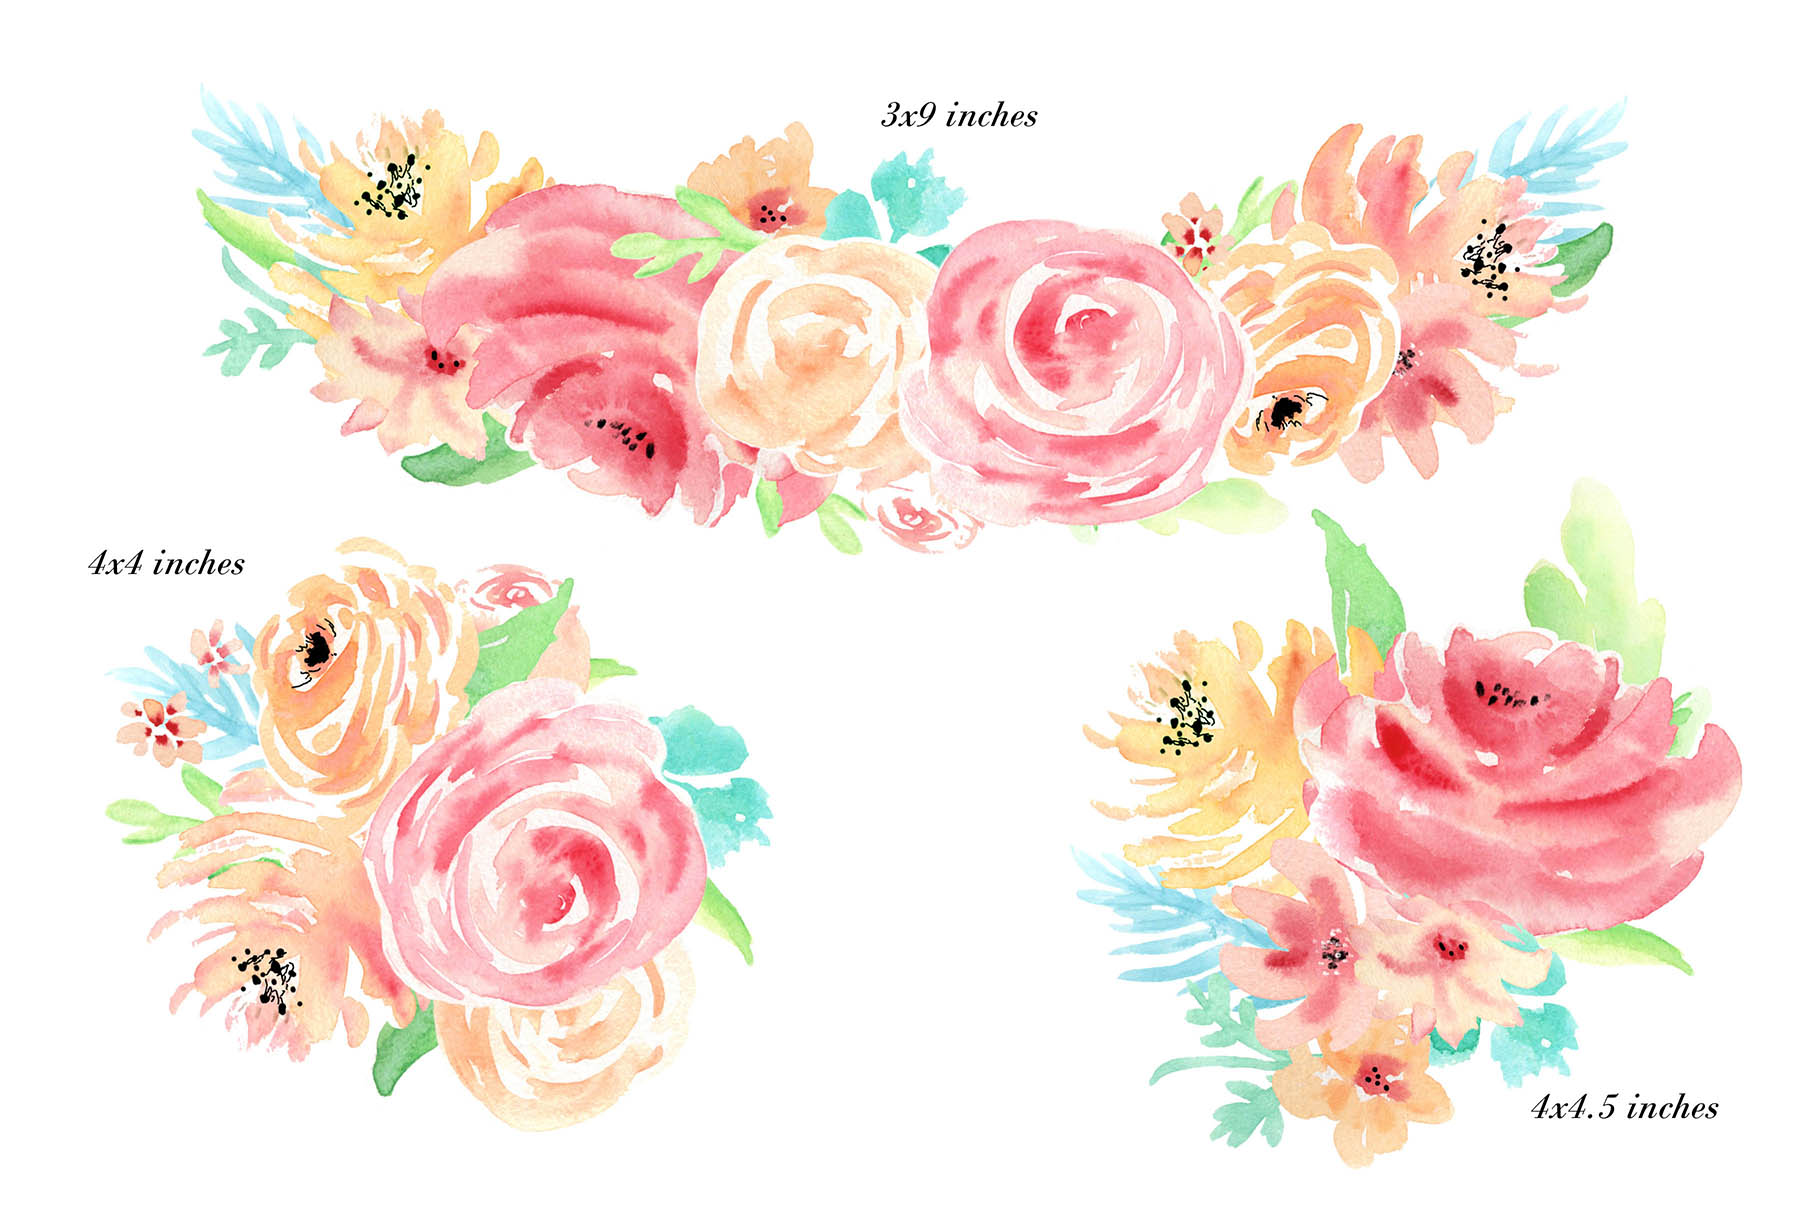 Watercolor flowers clip art. For wedding invitations, scrapbook, thank you card, logo creations. BOHO, Hand painted Watercolor floral example image 2